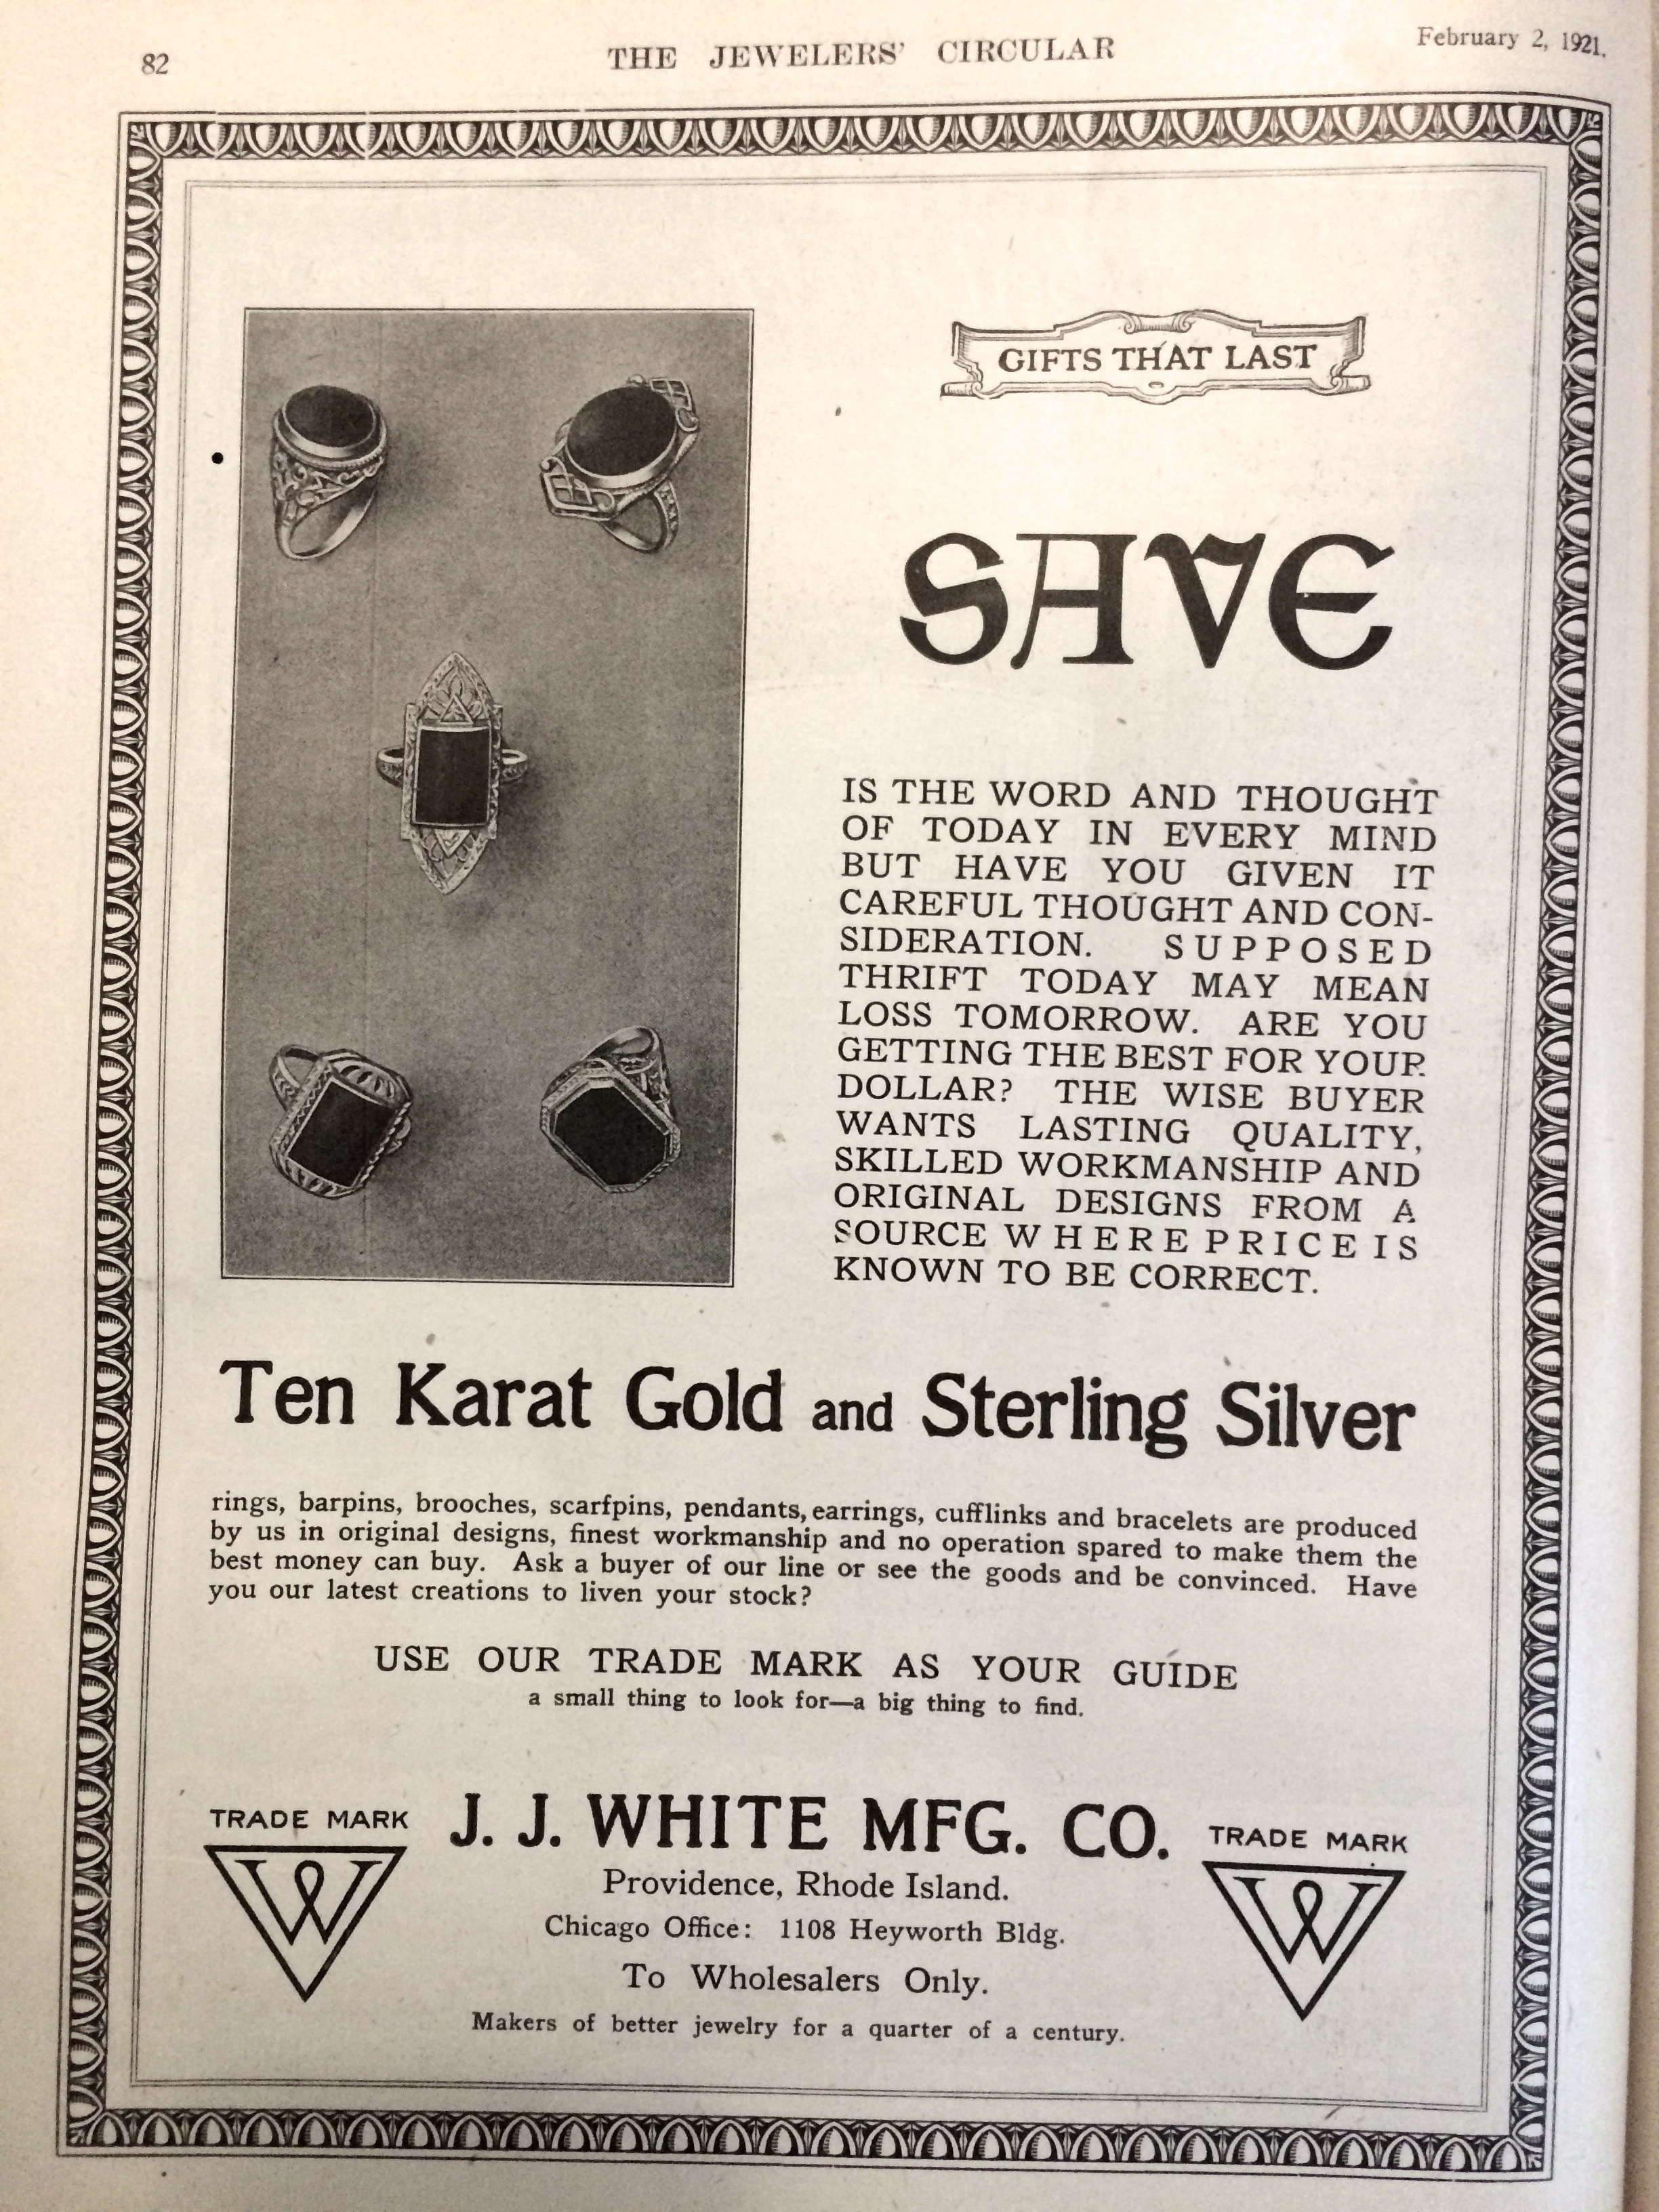 """Use our trade mark as your guide. A small thing to look for -- a big thing to find."" J.J. White Mfg Co. 1921 Advertisement."